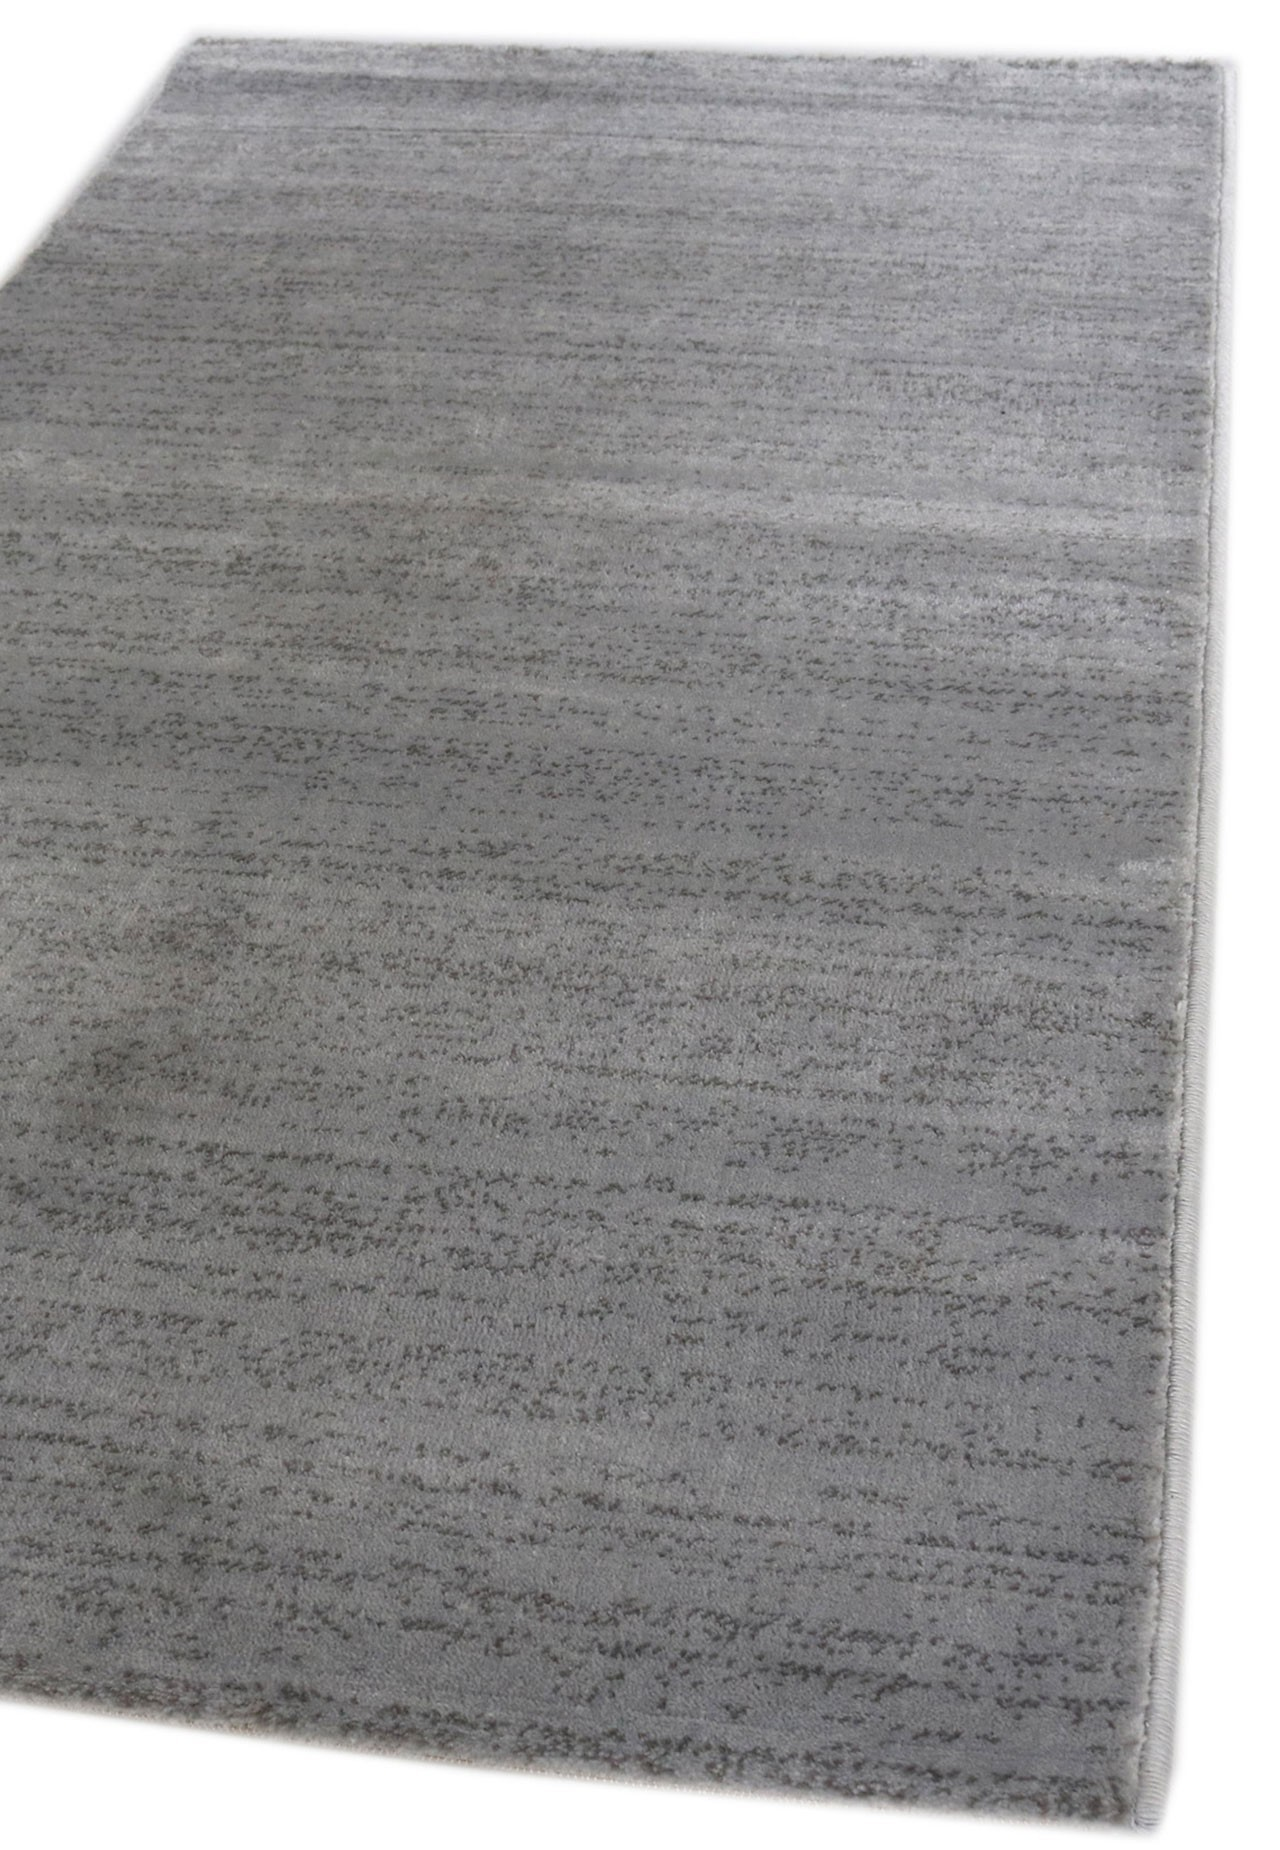 Tapis poils courts moderne gris clair soft universal Grand tapis clair